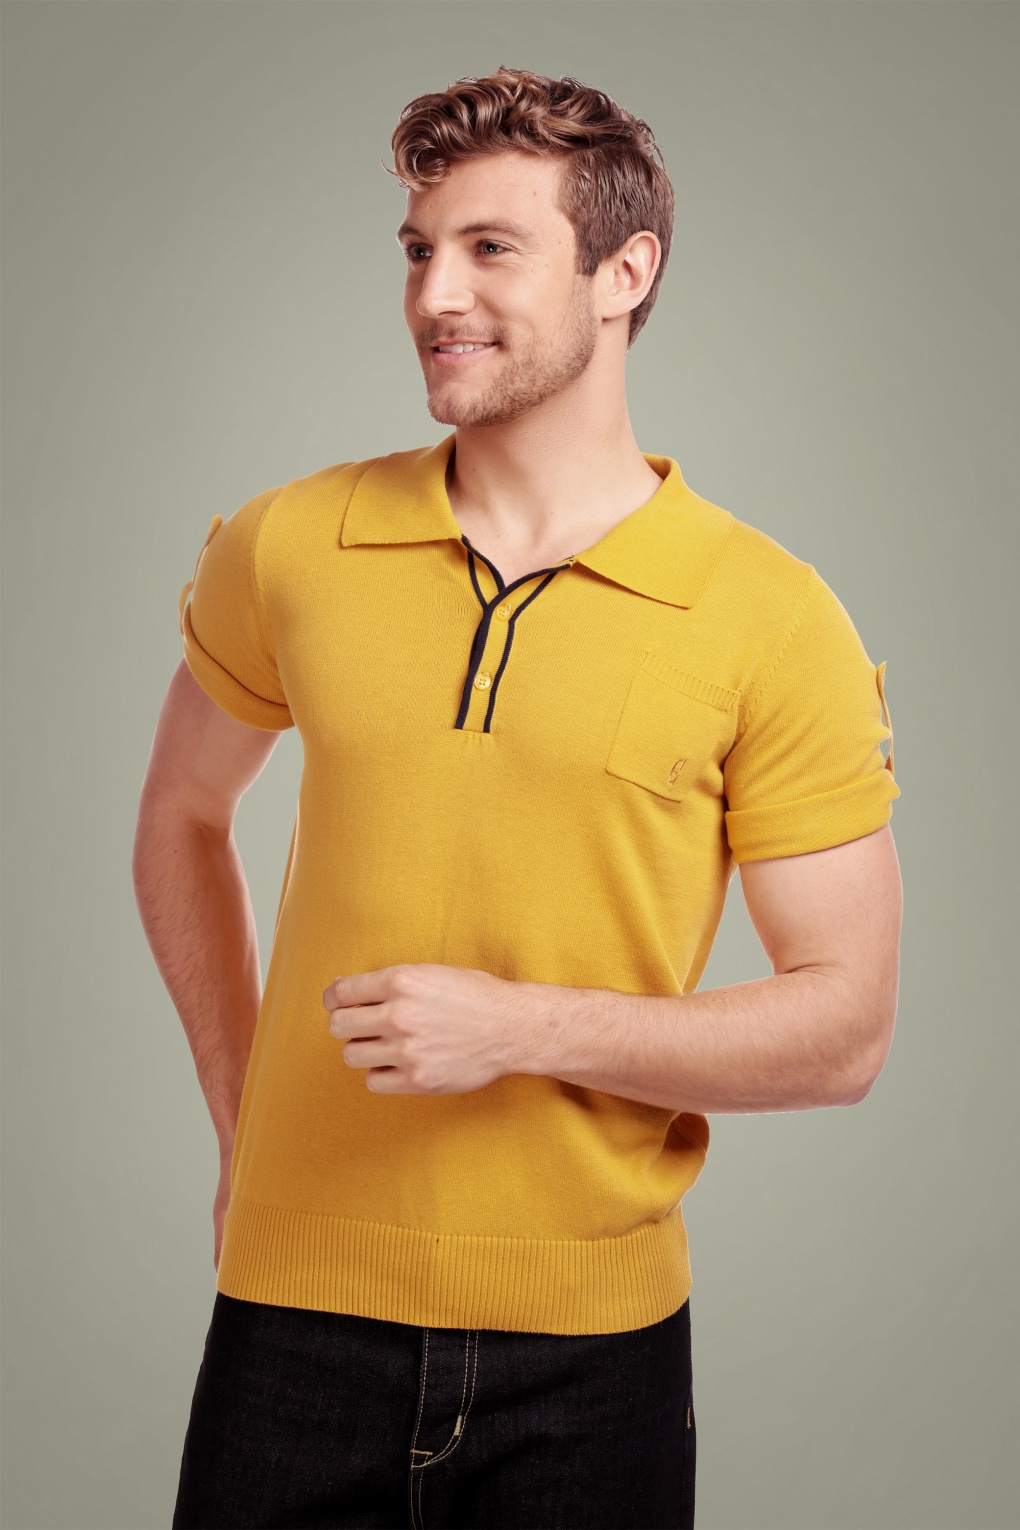 1960s -1970s Men's Clothing 50s Jorge Plain Knitted Polo Shirt in Yellow £41.85 AT vintagedancer.com